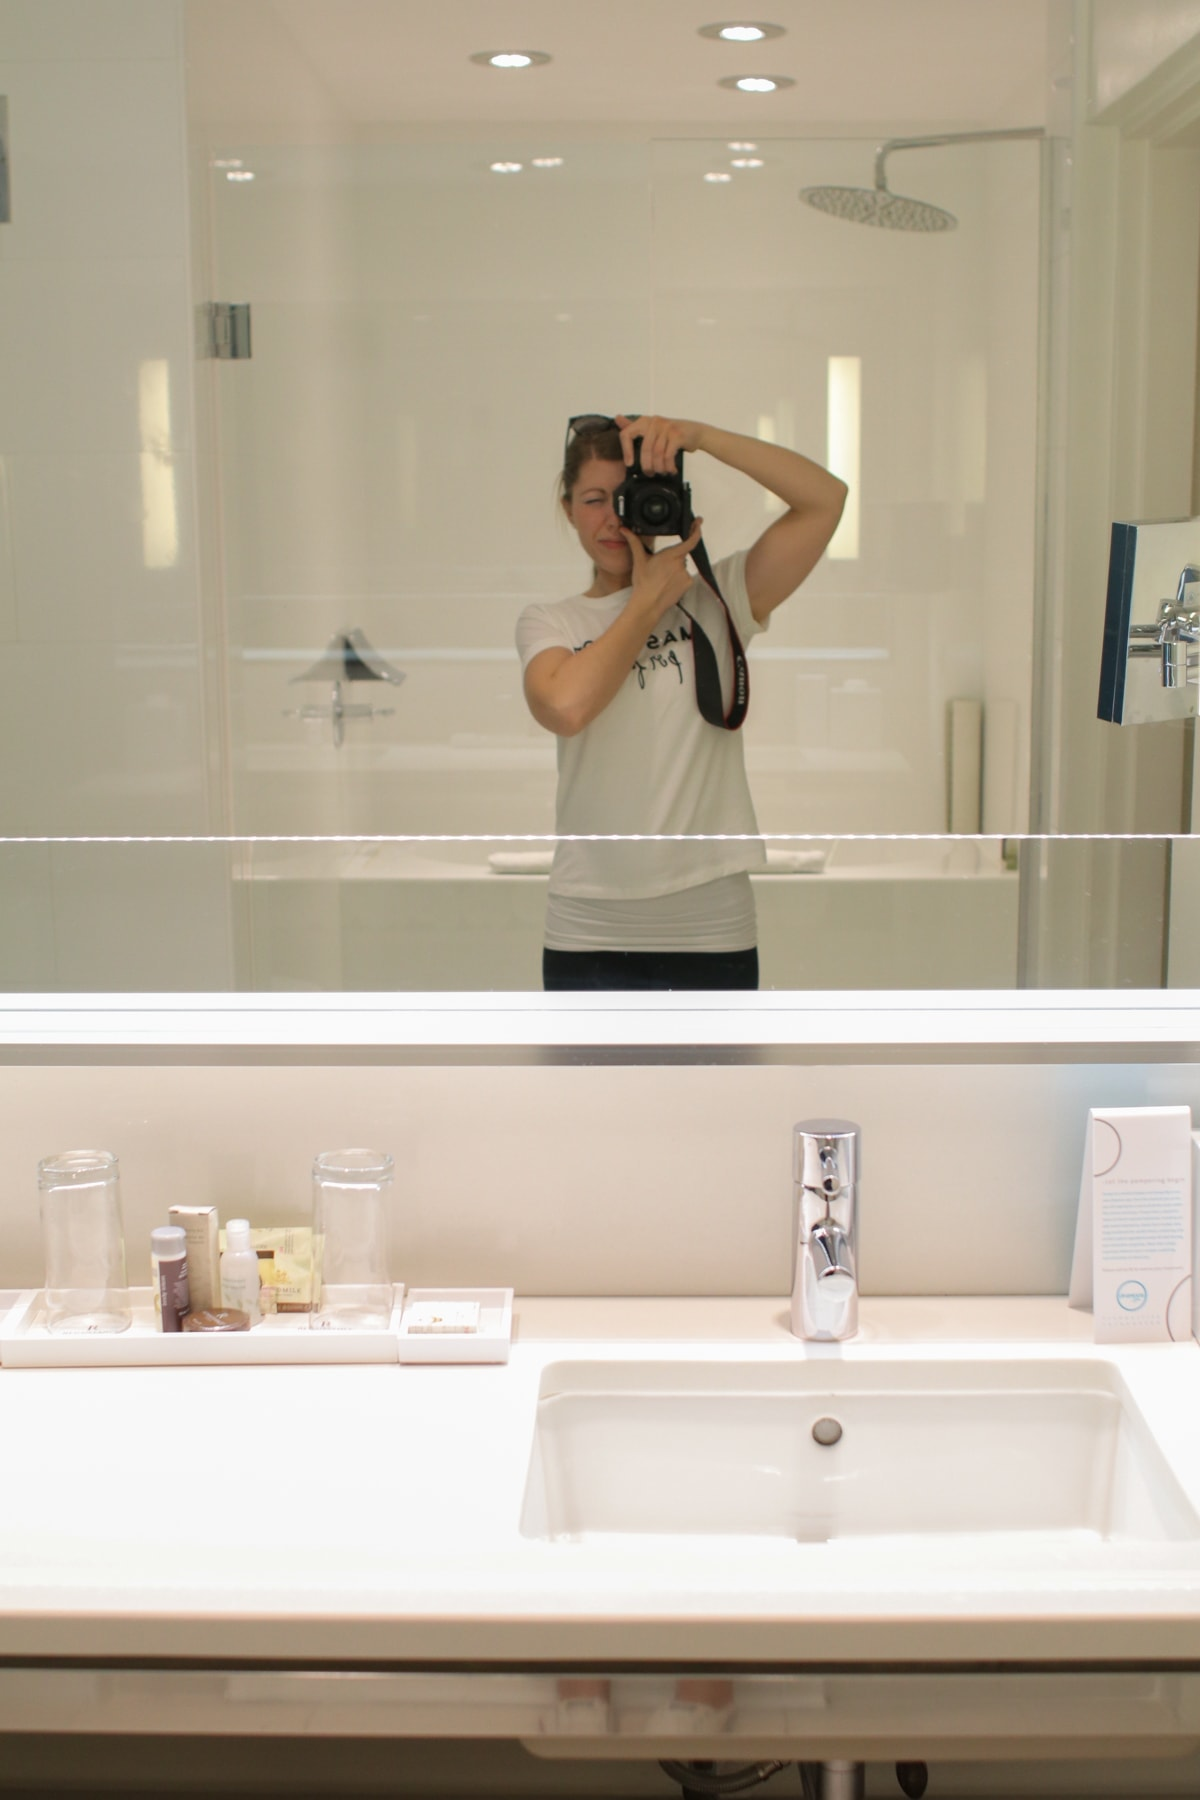 A person in front of a mirror posing for the camera